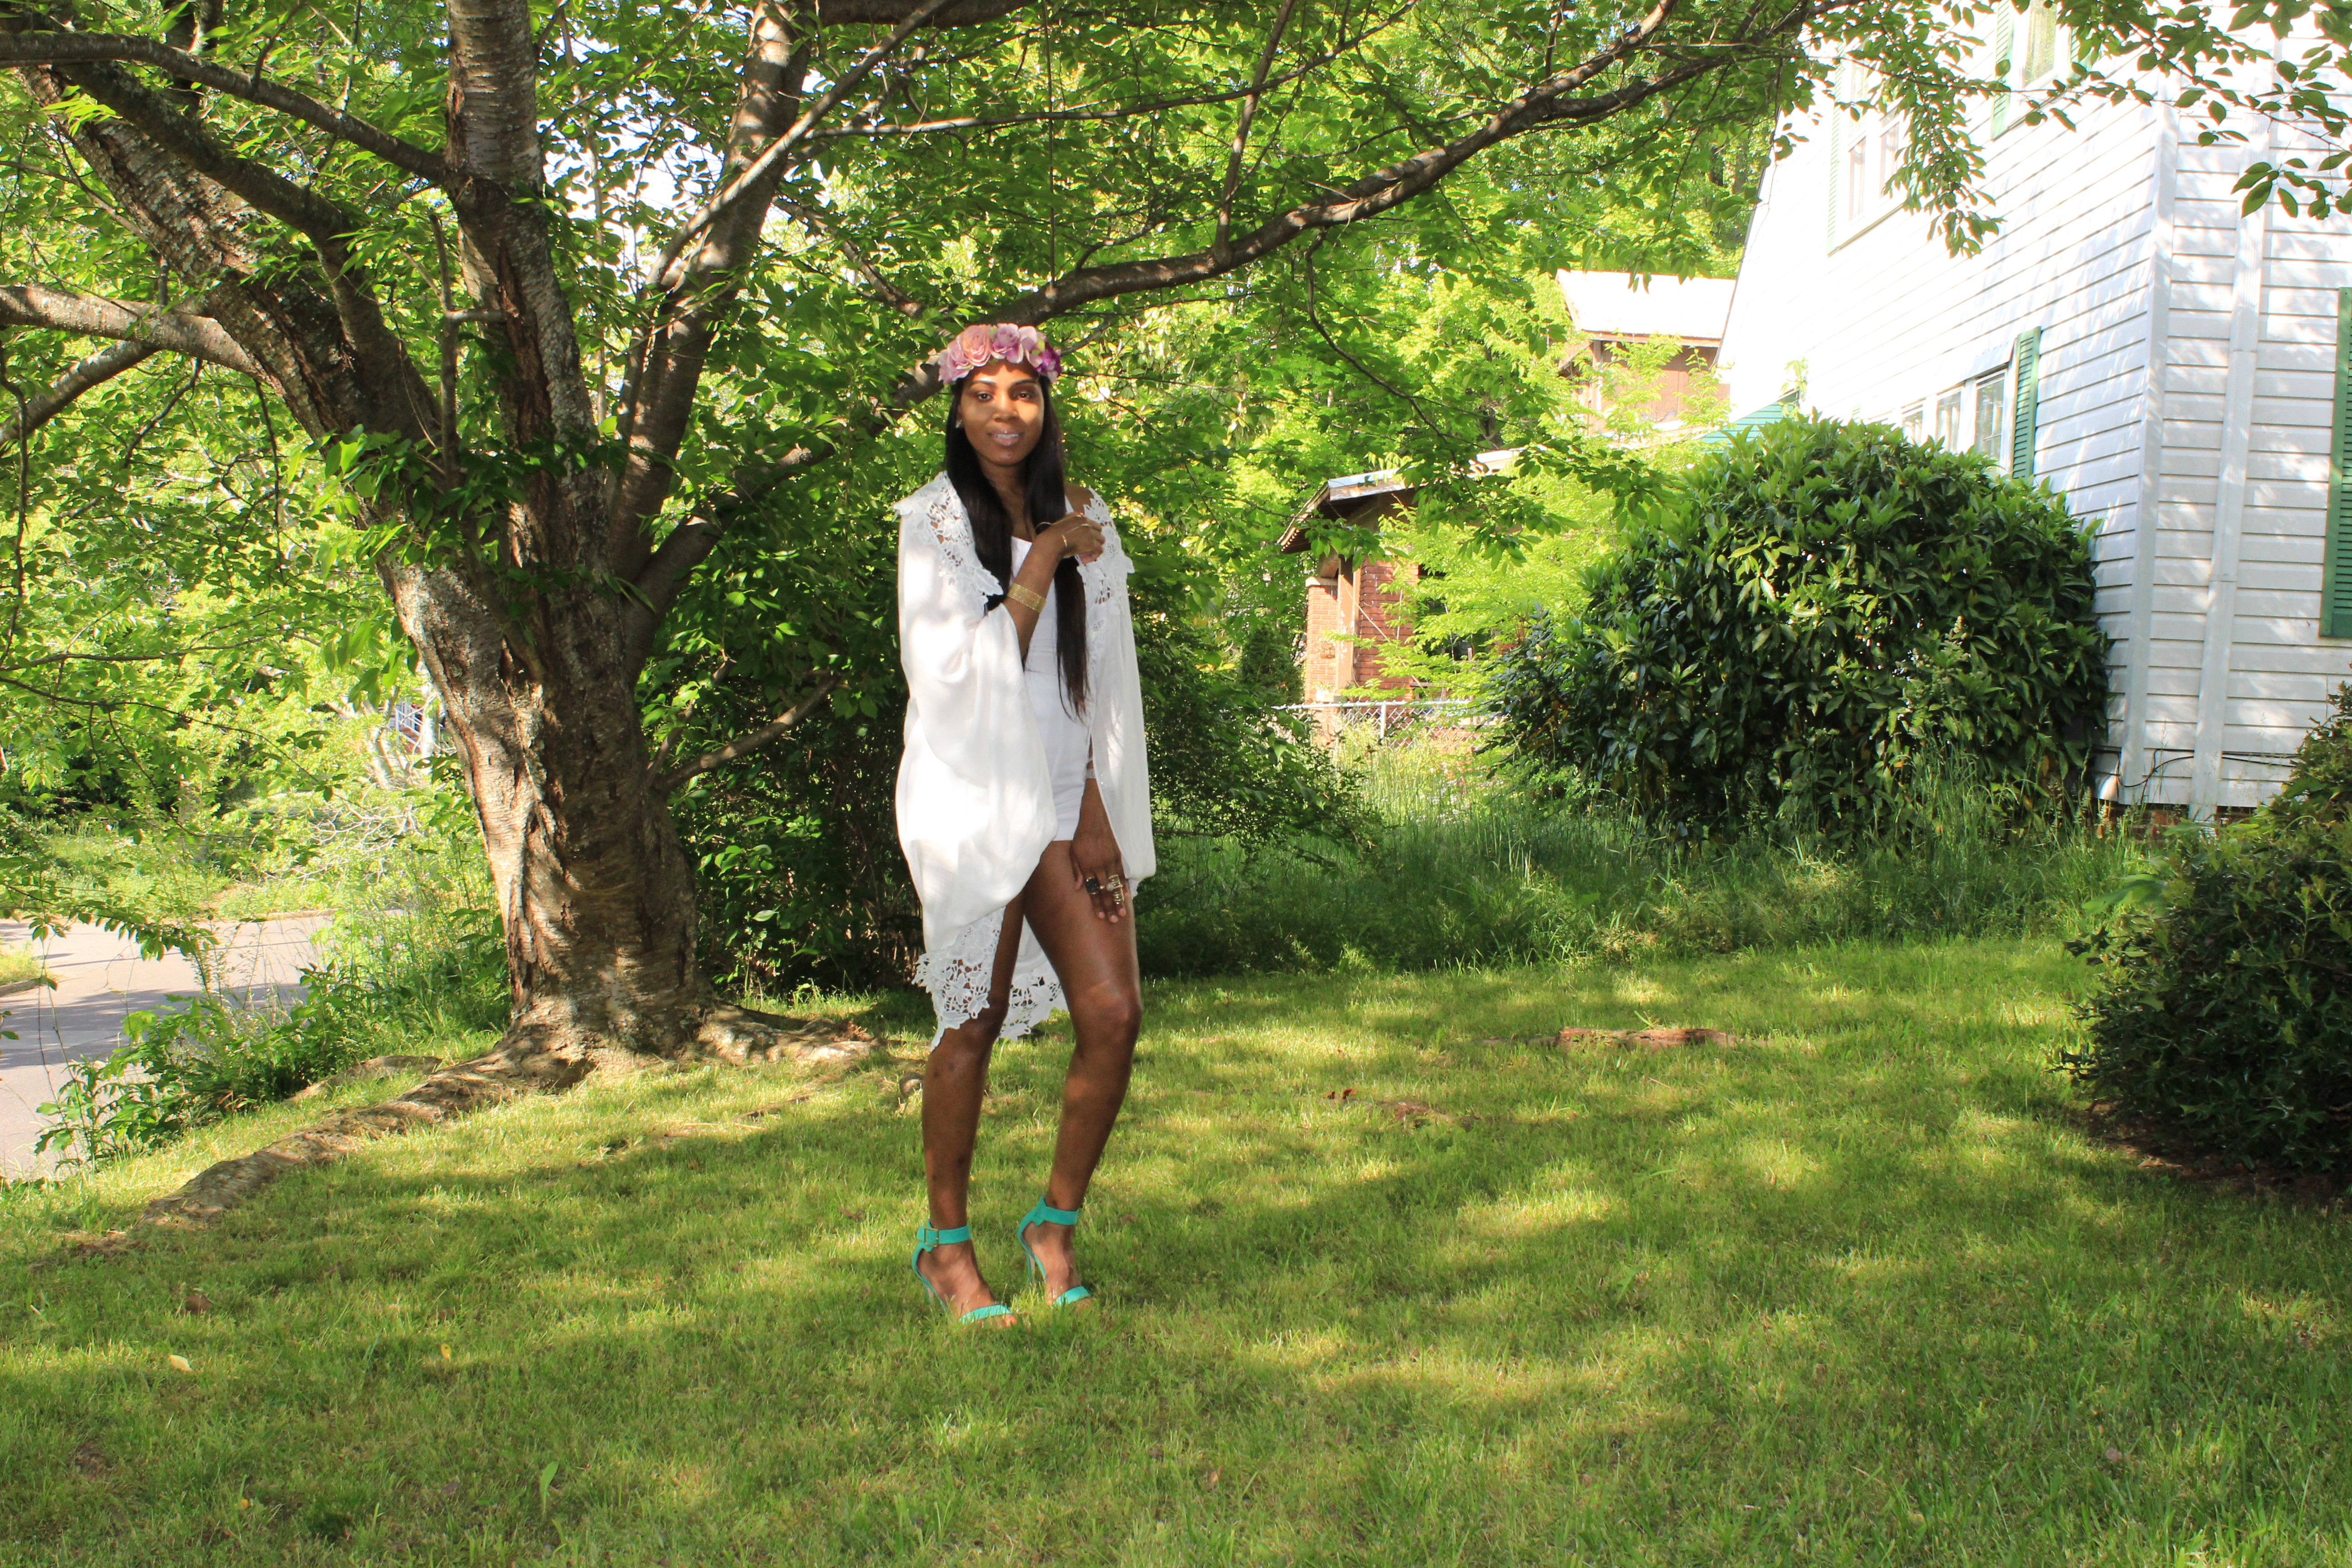 Style-Files-Target-Merona-White-Cocoon-forever21-White-high-waist-shorts-justfab-Paean-seafoam-sandals-flower-headband-Oohlalablog-13